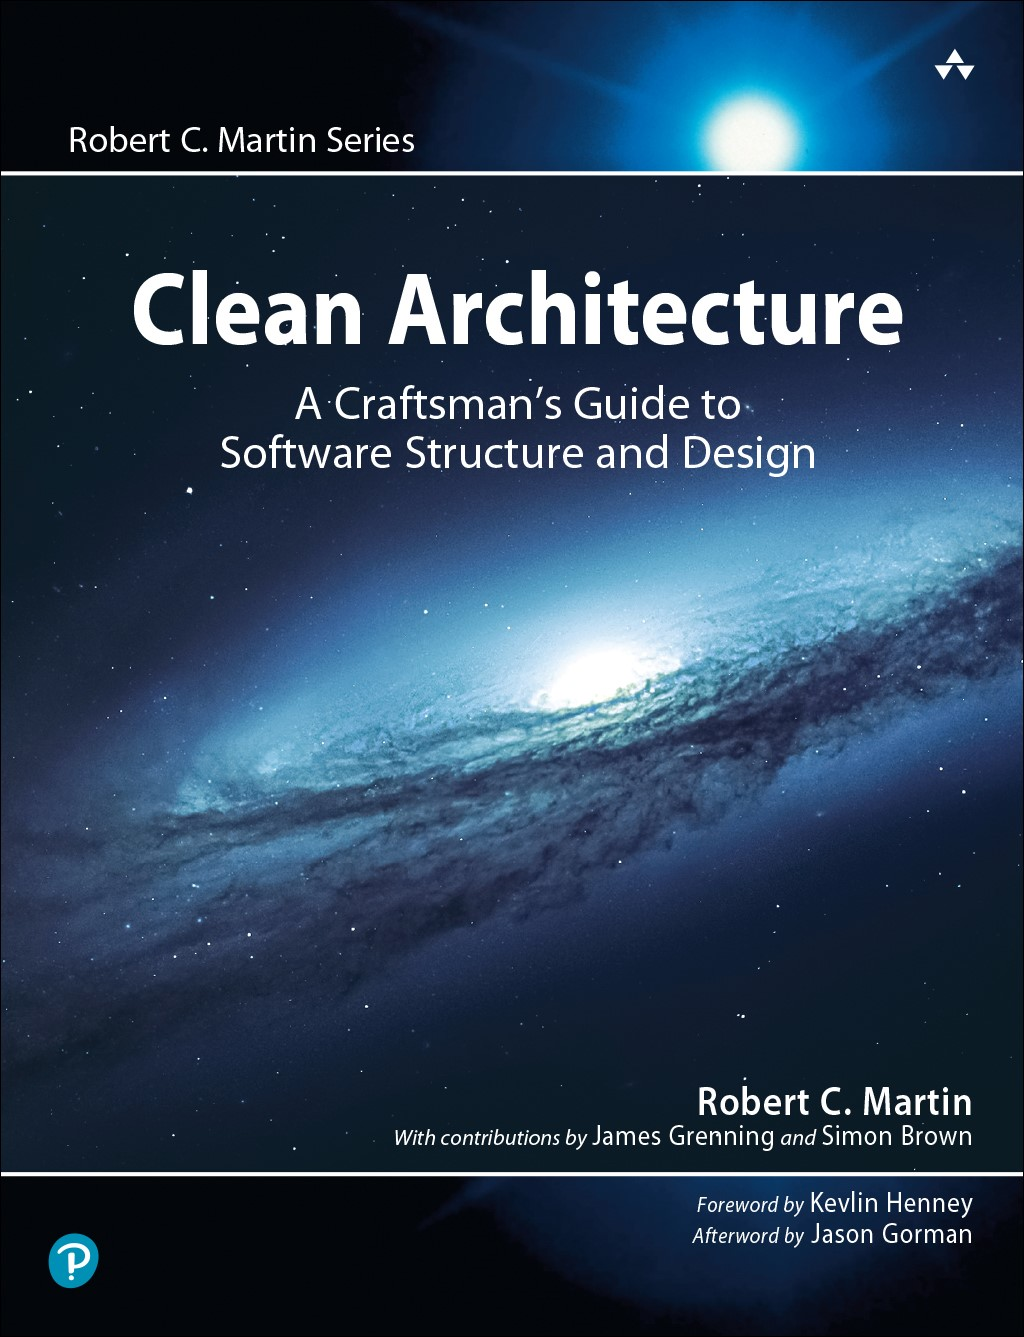 Clean Architecture: A Craftsman's Guide to Software Structure and Design